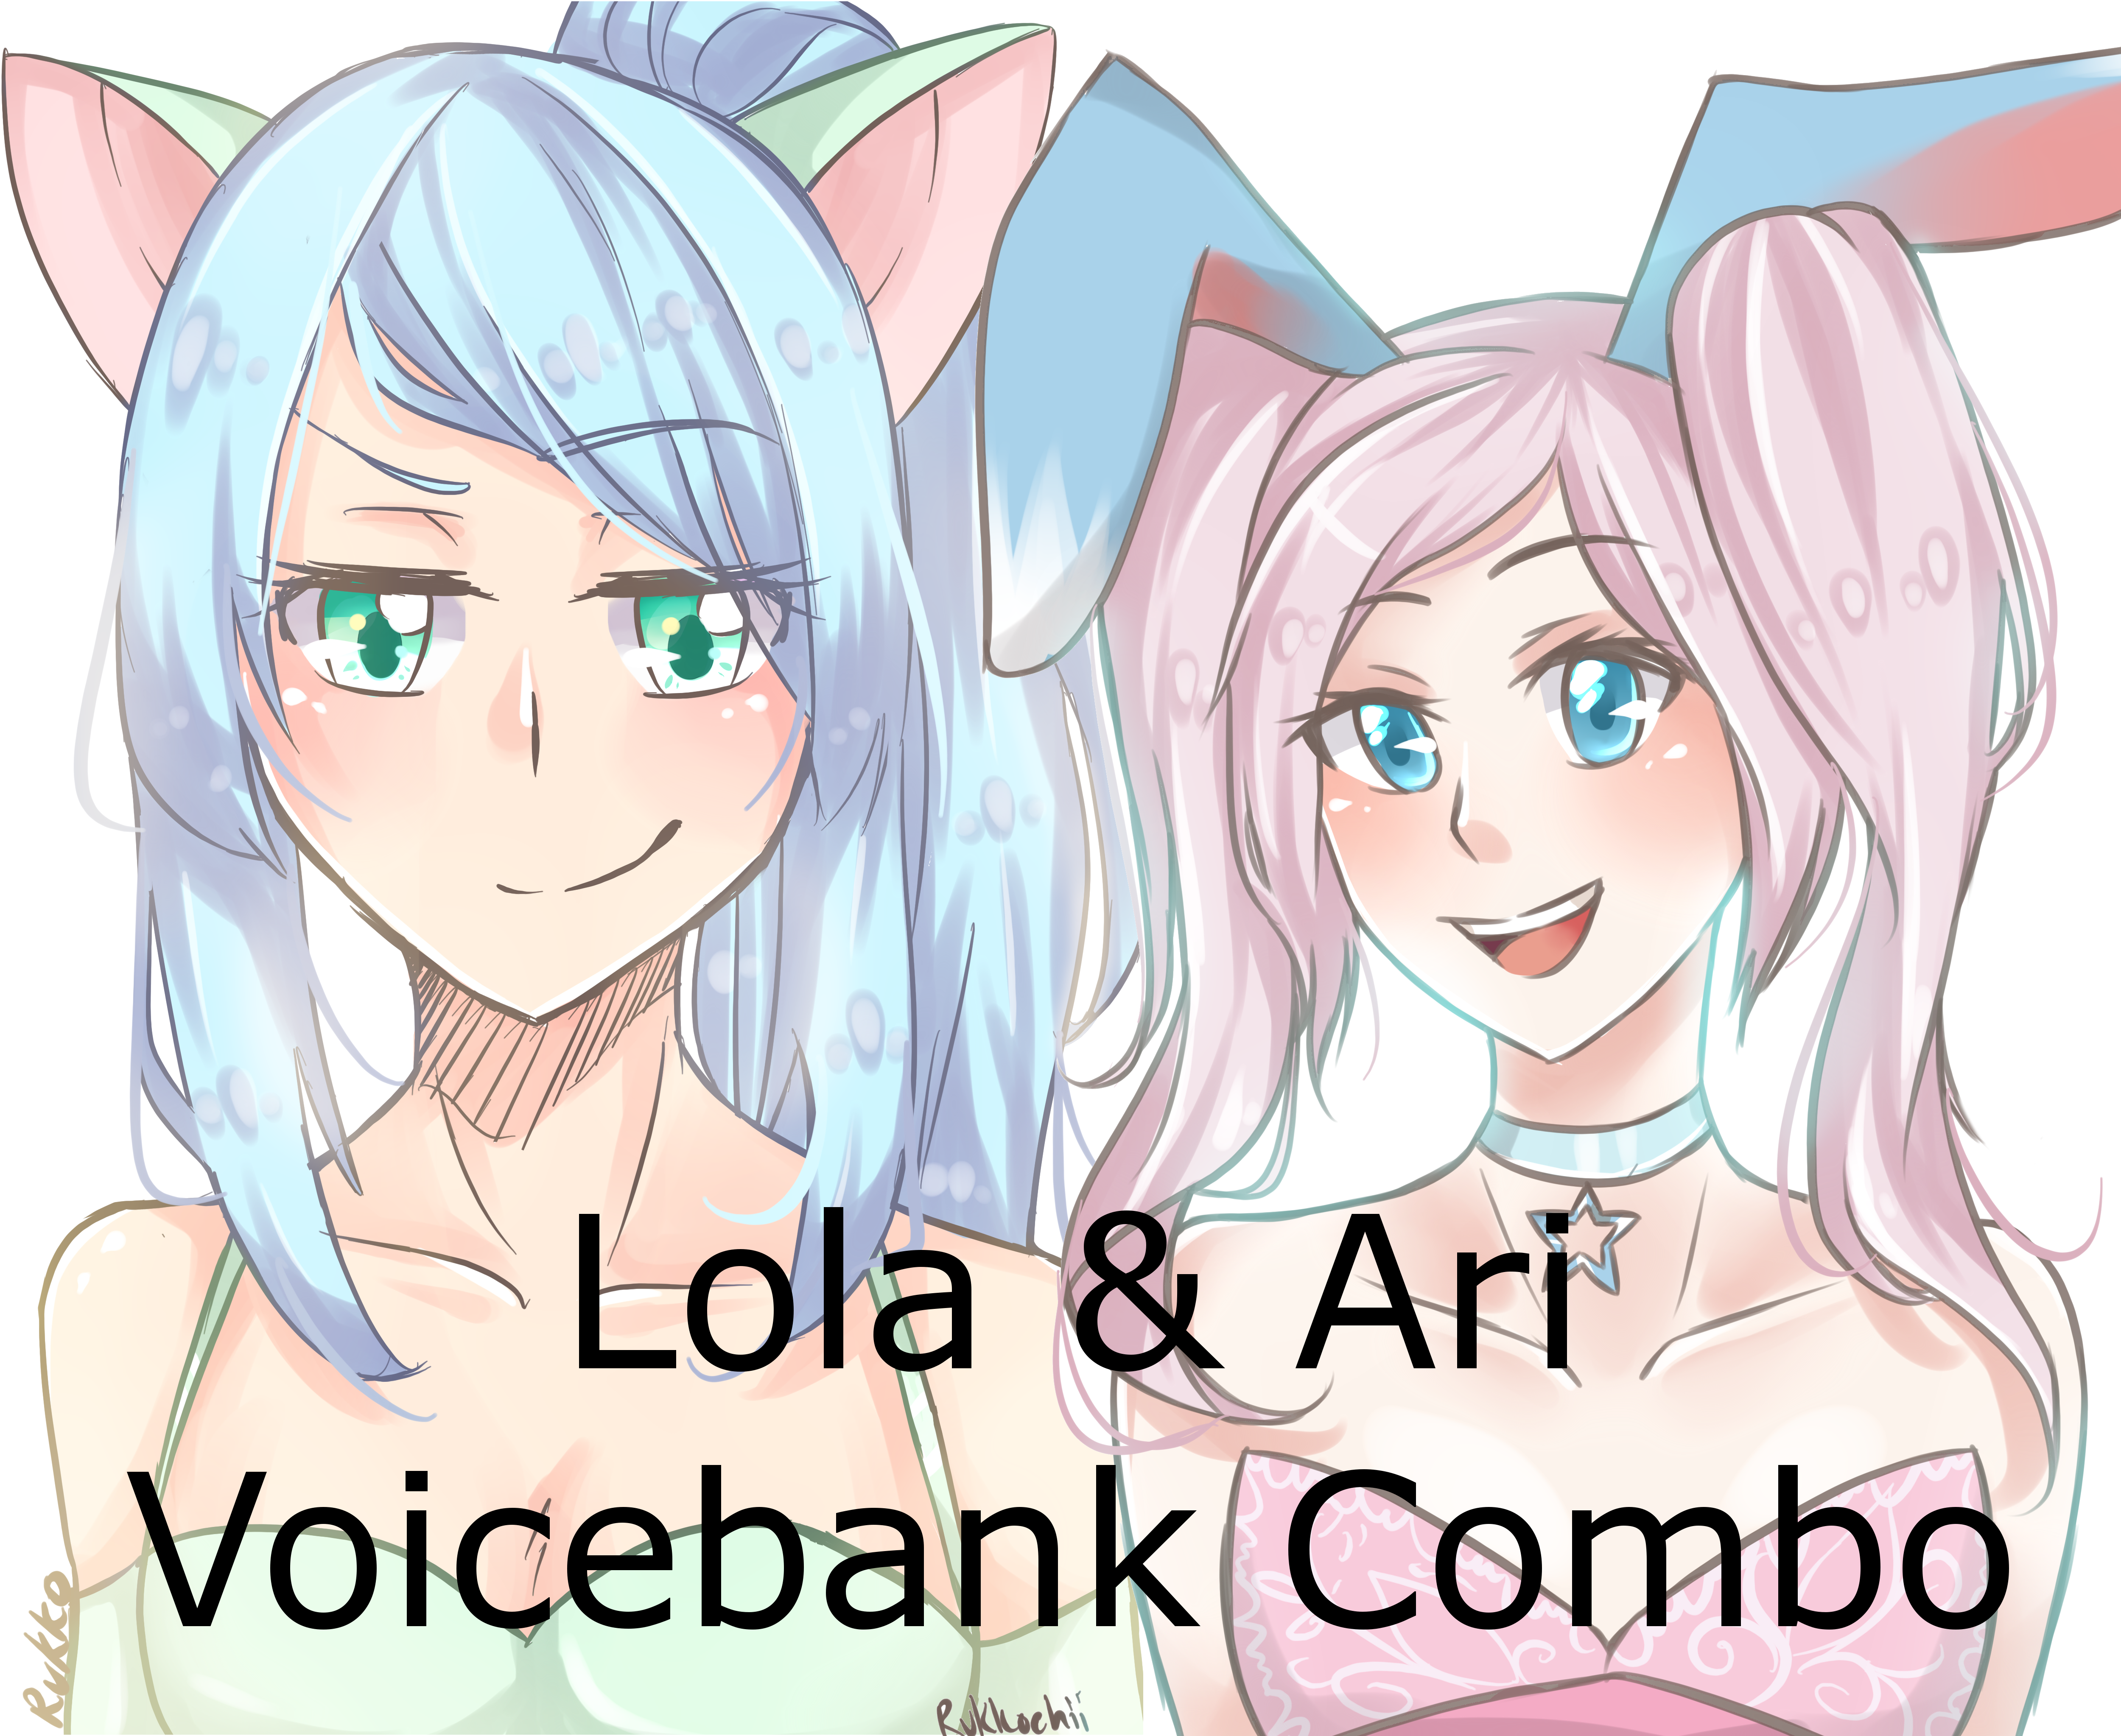 Lola and Ari Voicebank Combo DL [Discontinued]